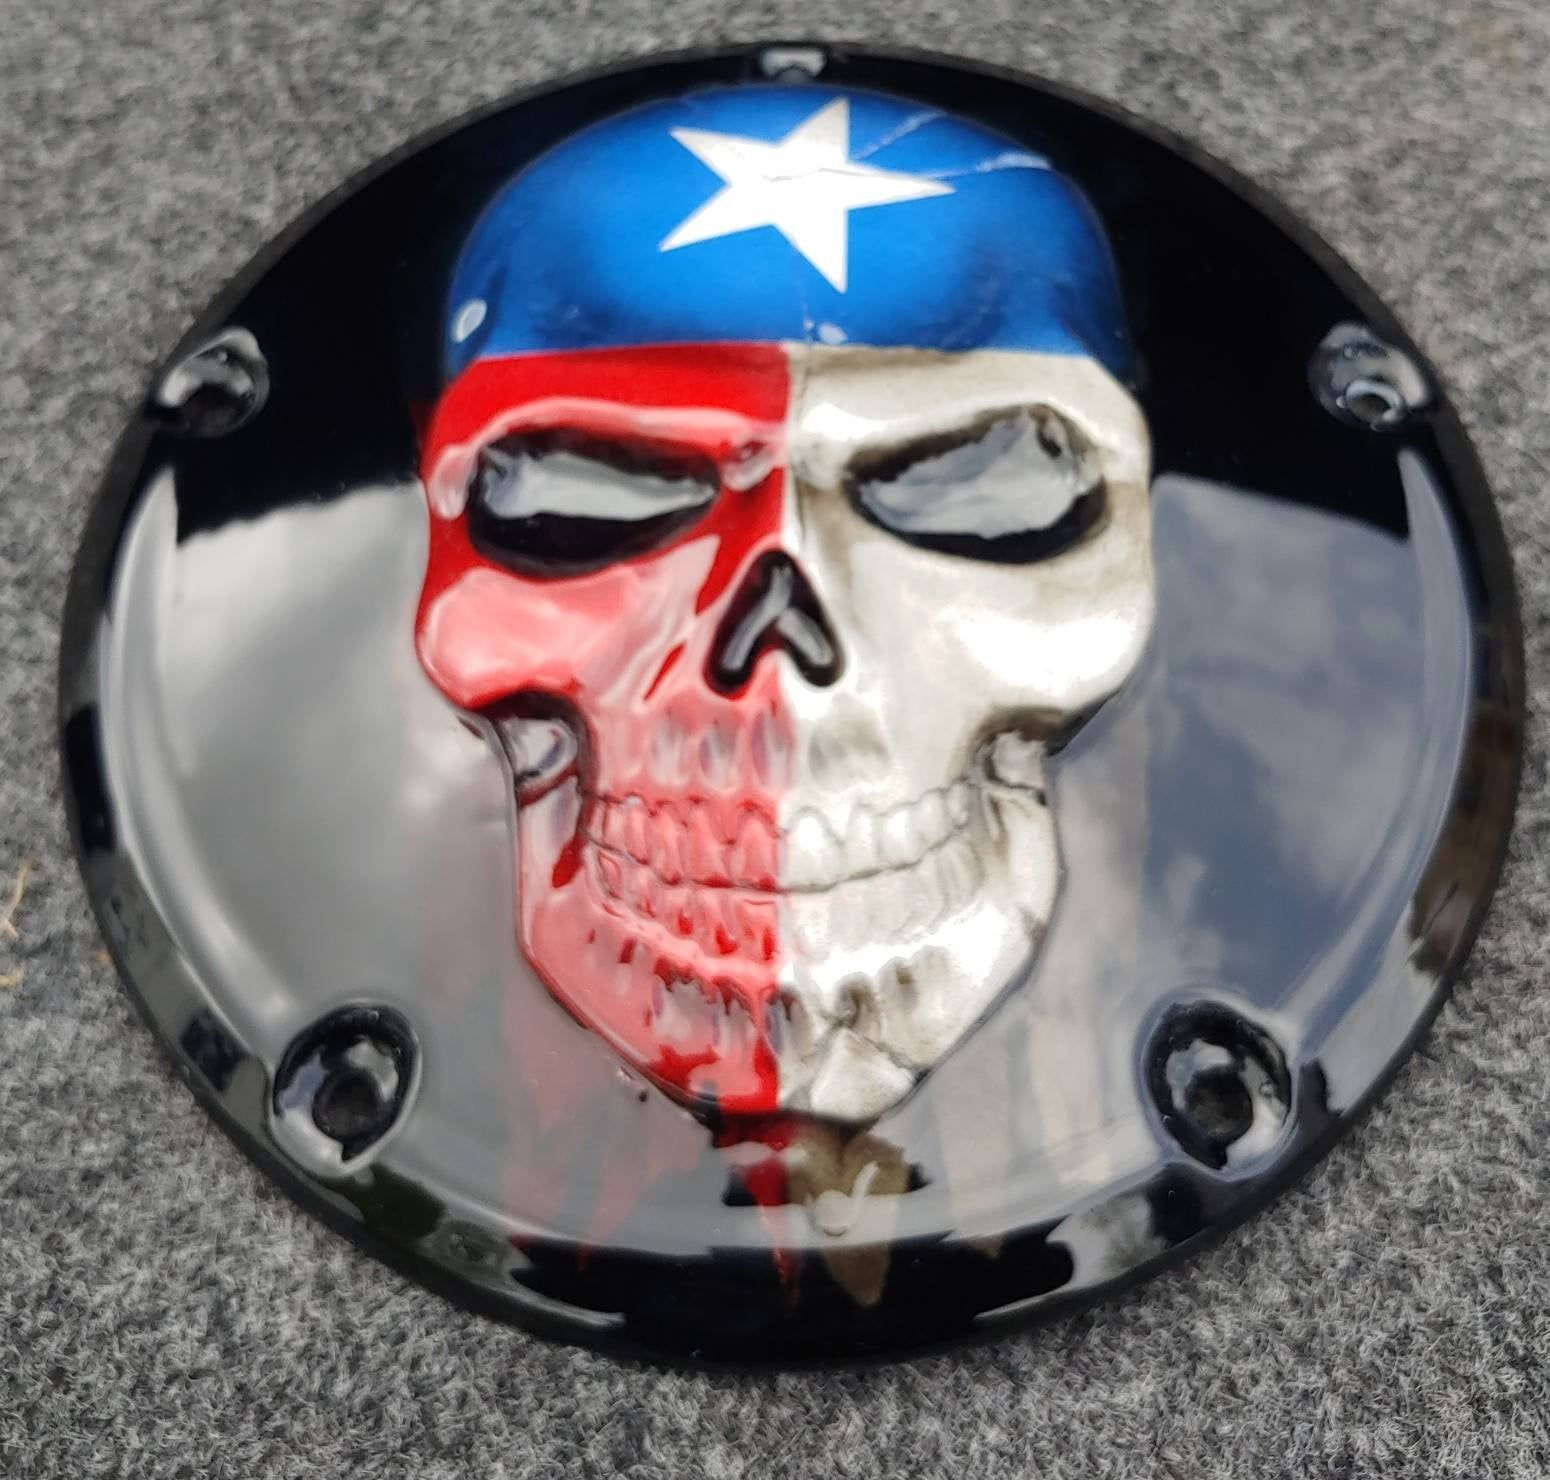 3d Skull With Tattered Texas Flag On A Harley Davidson Clutch Derby Cover Blackandwhiteflag Tatteredflag Flag Derbycove In 2020 Black And White Flag Skull 3d Skull